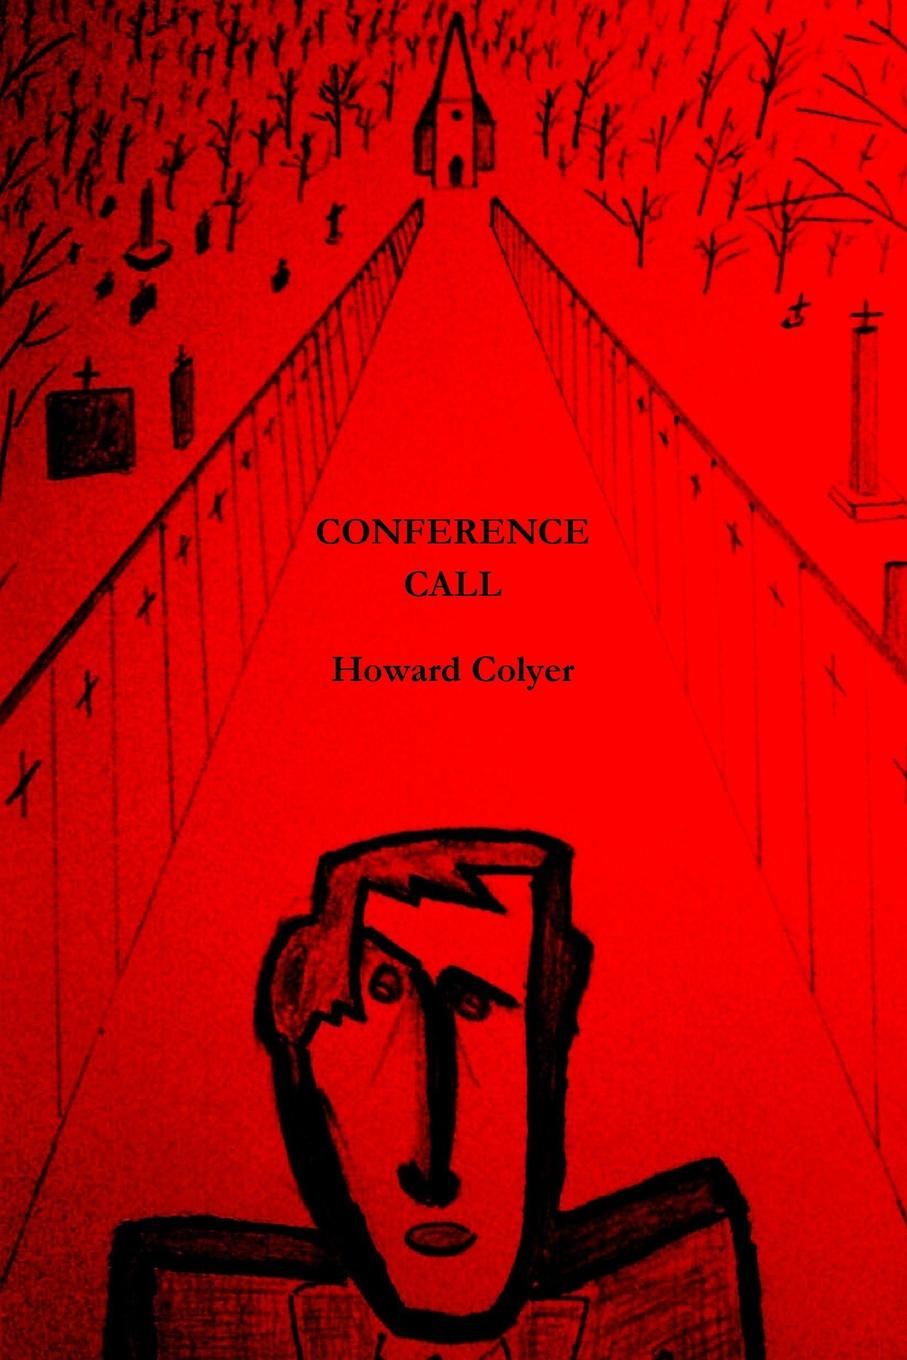 Howard Colyer Conference Call theatre of incest